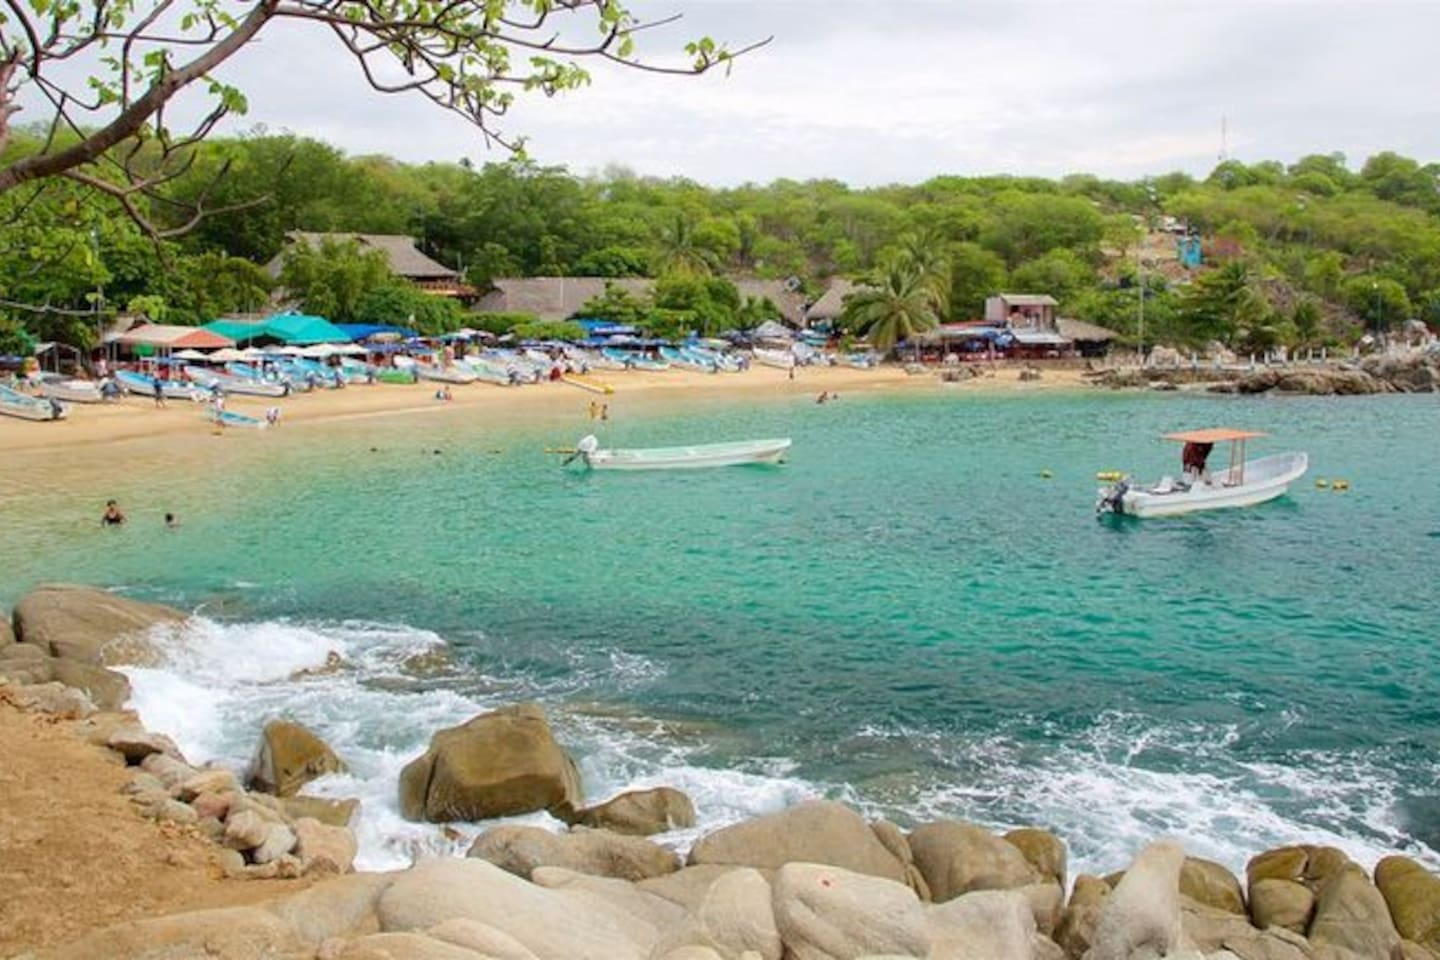 playa a 100 mts. de la estancia ideal para nadar con la familia